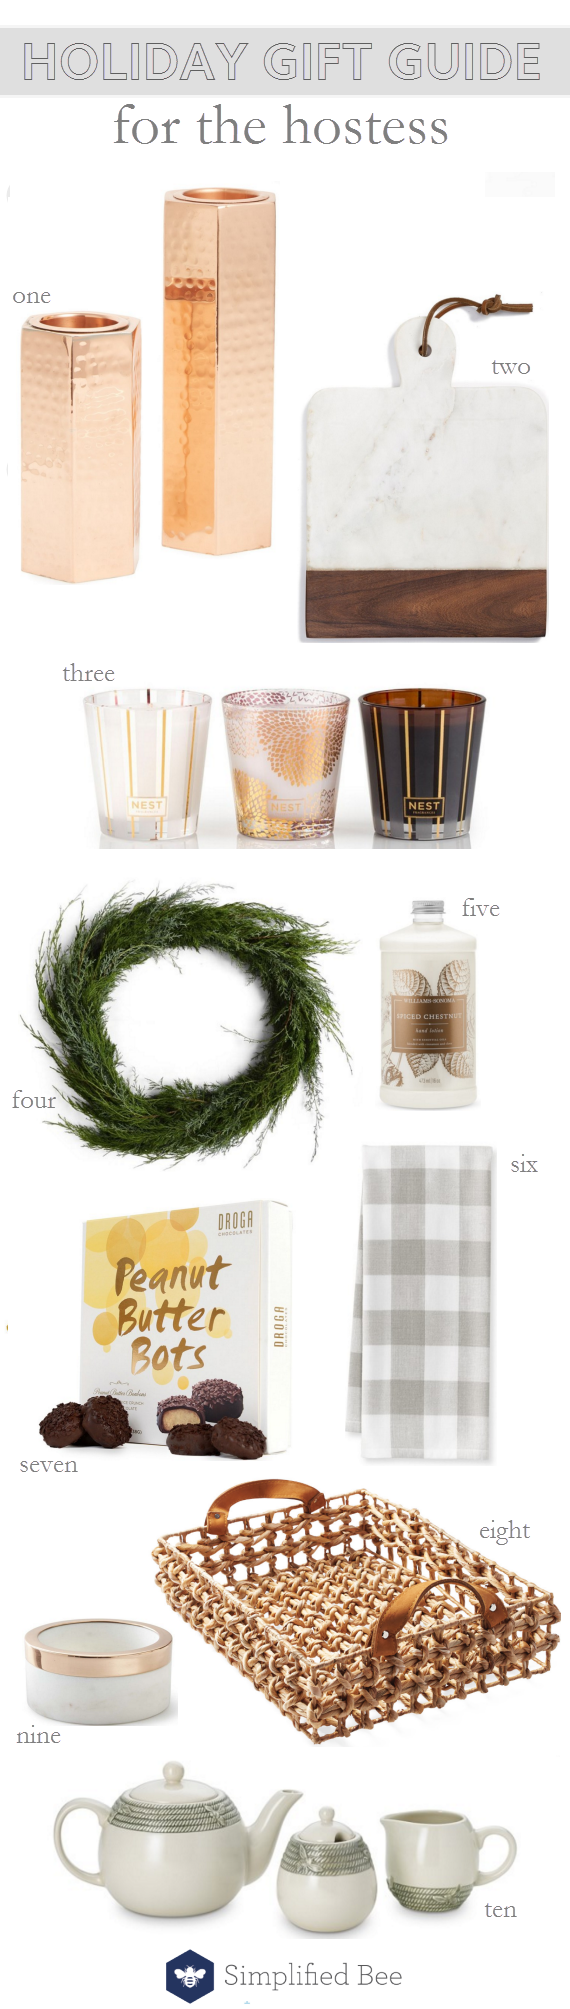 holiday gift guide 2016 // for the hostess #giftguide2016 #holiday2016